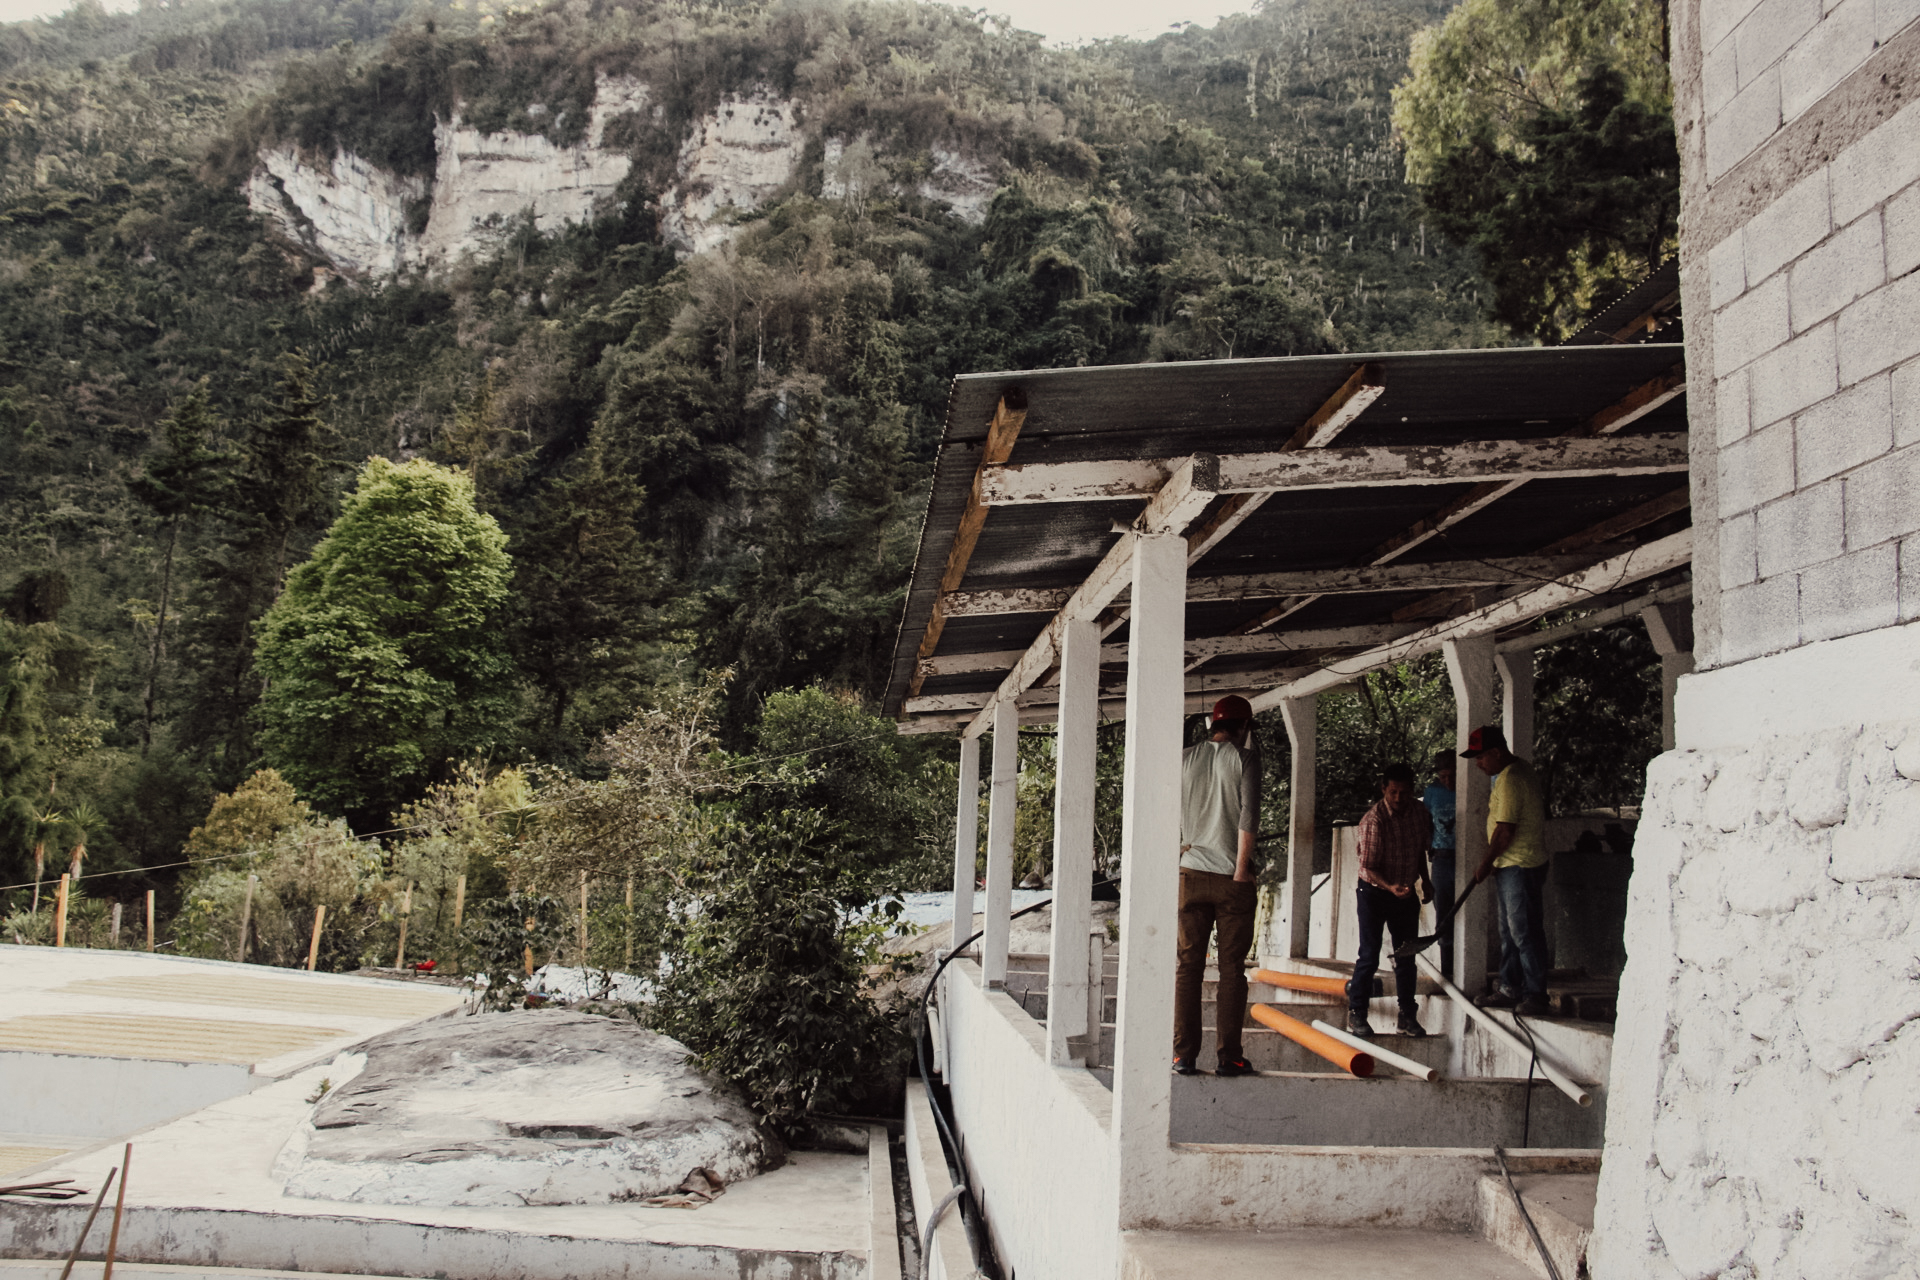 Chalk white cliffs overlook the wet mill and patios at Jenner, Rodin, and Dennis' new finca.